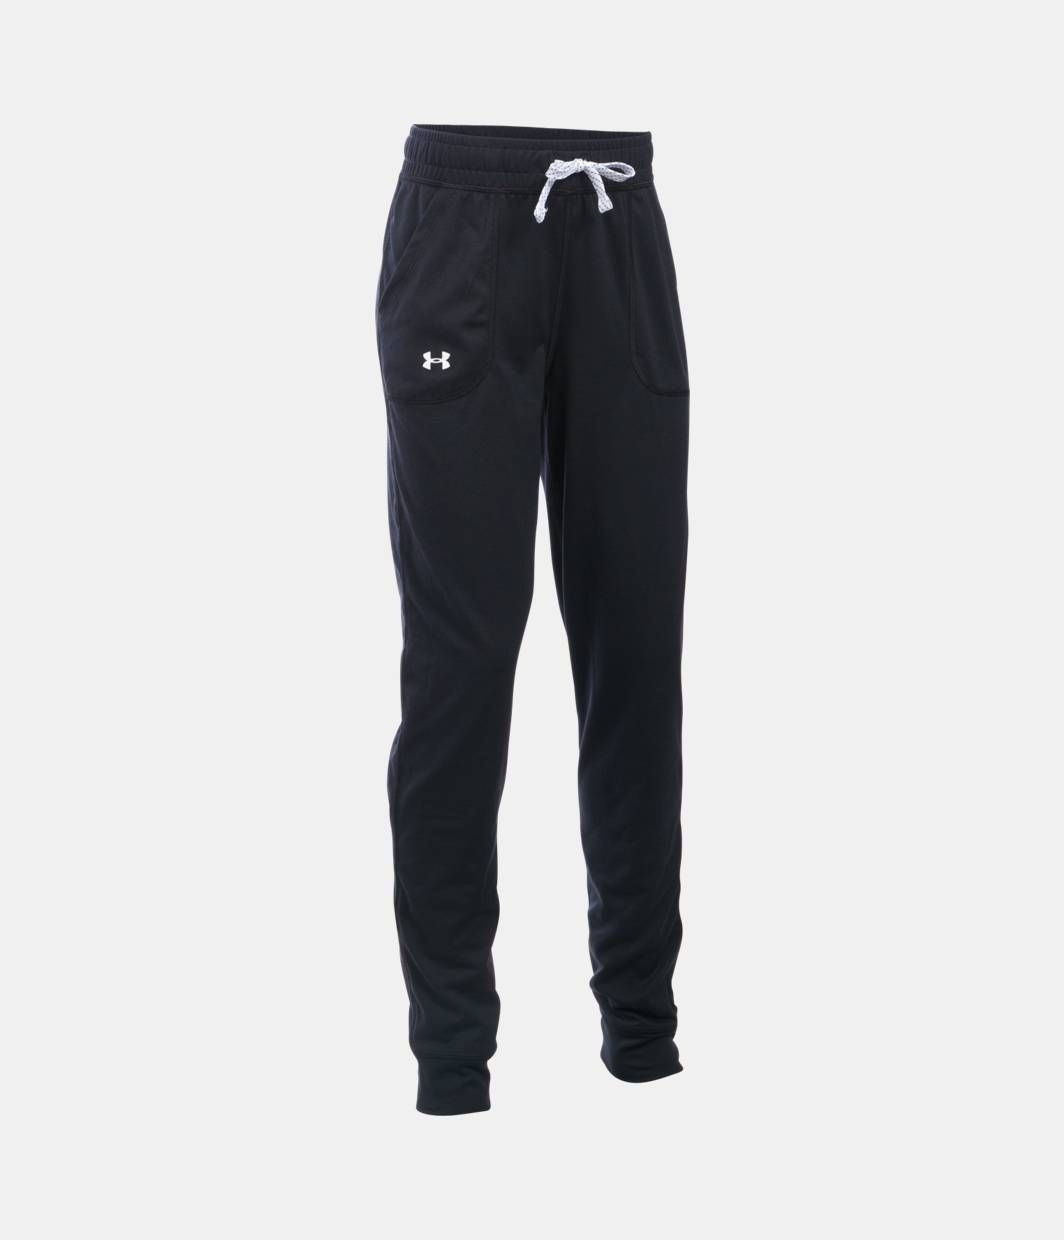 a0c3ab7e37 Girls' UA Graphic Tech™ Joggers | Under Armour US | Outfit ideas ...